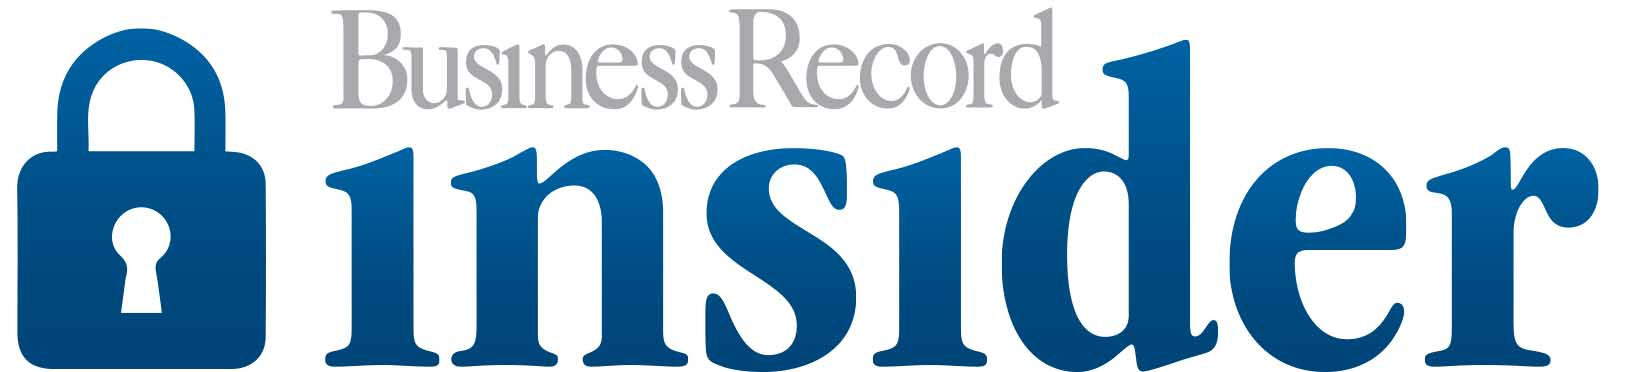 Business Record Insider